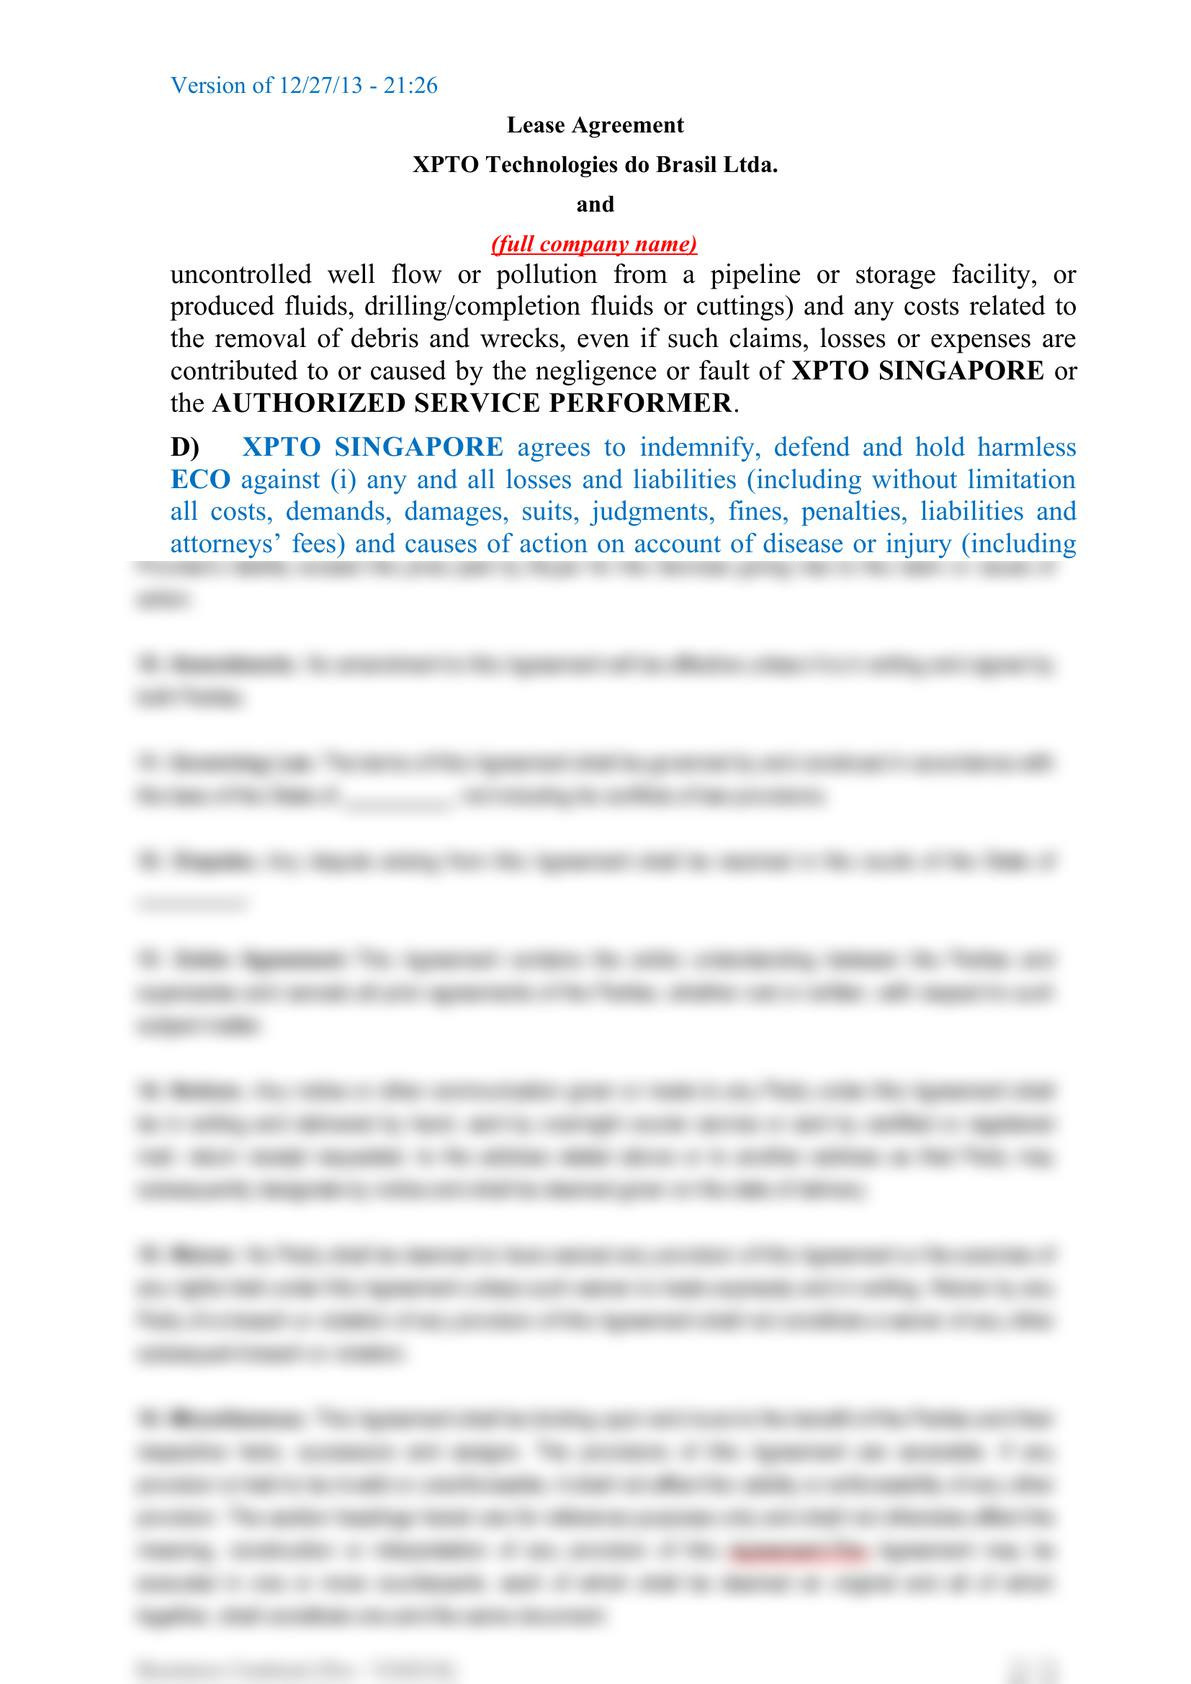 Subsea equipment lease agreement-6